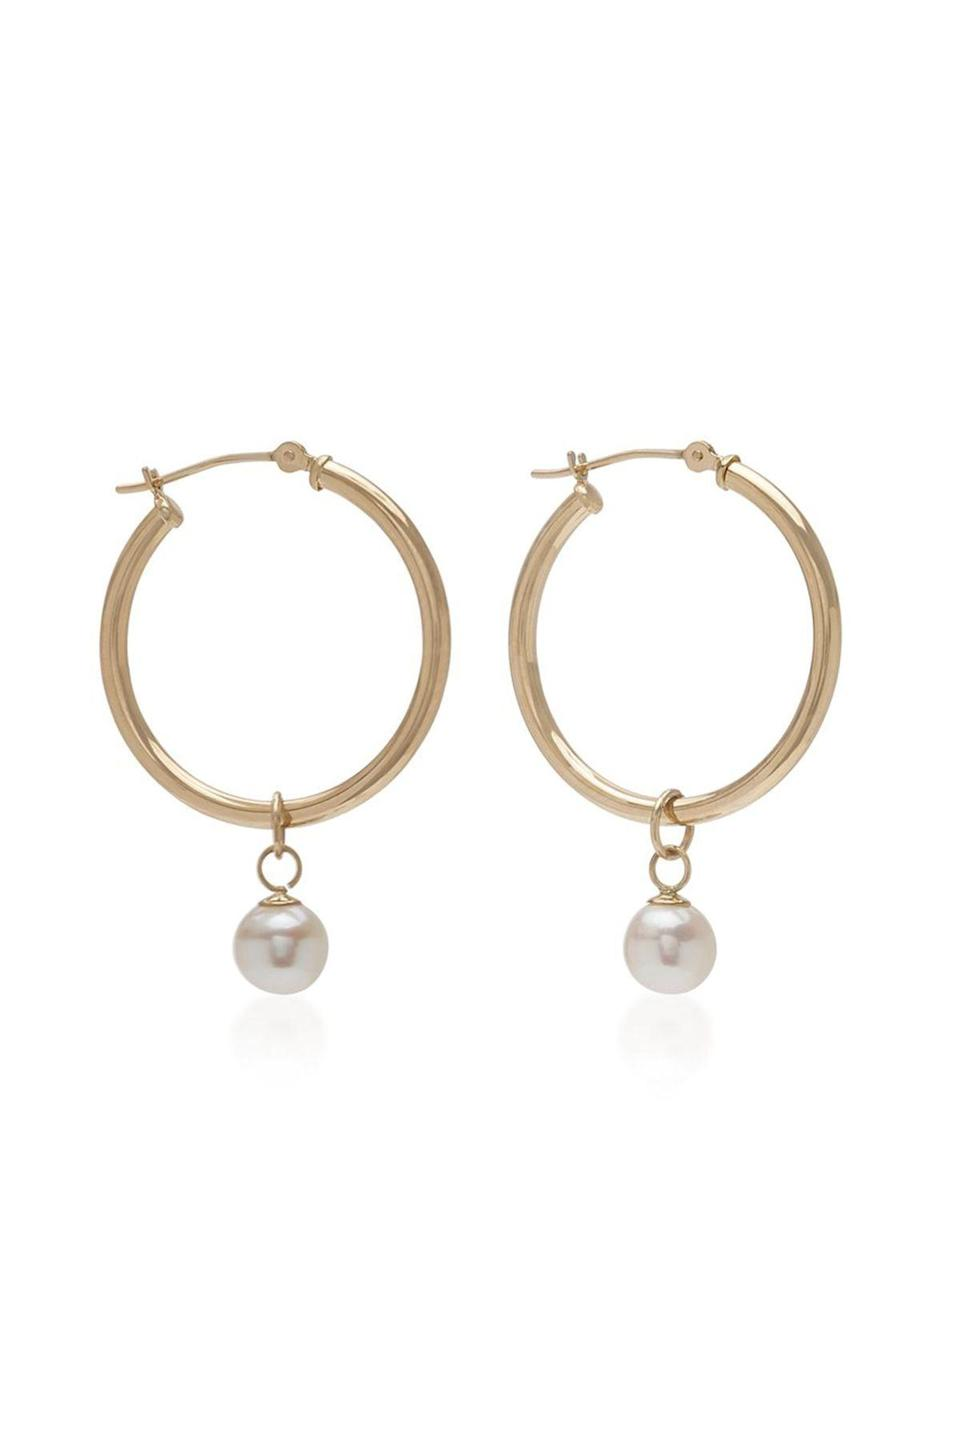 """<p><strong>Mateo</strong></p><p>modaoperandi.com</p><p><strong>$475.00</strong></p><p><a href=""""https://go.redirectingat.com?id=74968X1596630&url=https%3A%2F%2Fwww.modaoperandi.com%2Fmateo-fw19%2Fdetachable-pearl-hoop-25mm&sref=https%3A%2F%2Fwww.townandcountrymag.com%2Fstyle%2Fjewelry-and-watches%2Fg33469392%2Fthe-weekly-covet-july-31-2020%2F"""" rel=""""nofollow noopener"""" target=""""_blank"""" data-ylk=""""slk:Shop Now"""" class=""""link rapid-noclick-resp"""">Shop Now</a></p><p>Two earrings in one these hoops from Mateo allow you to wear with or without the pearl drops. </p>"""